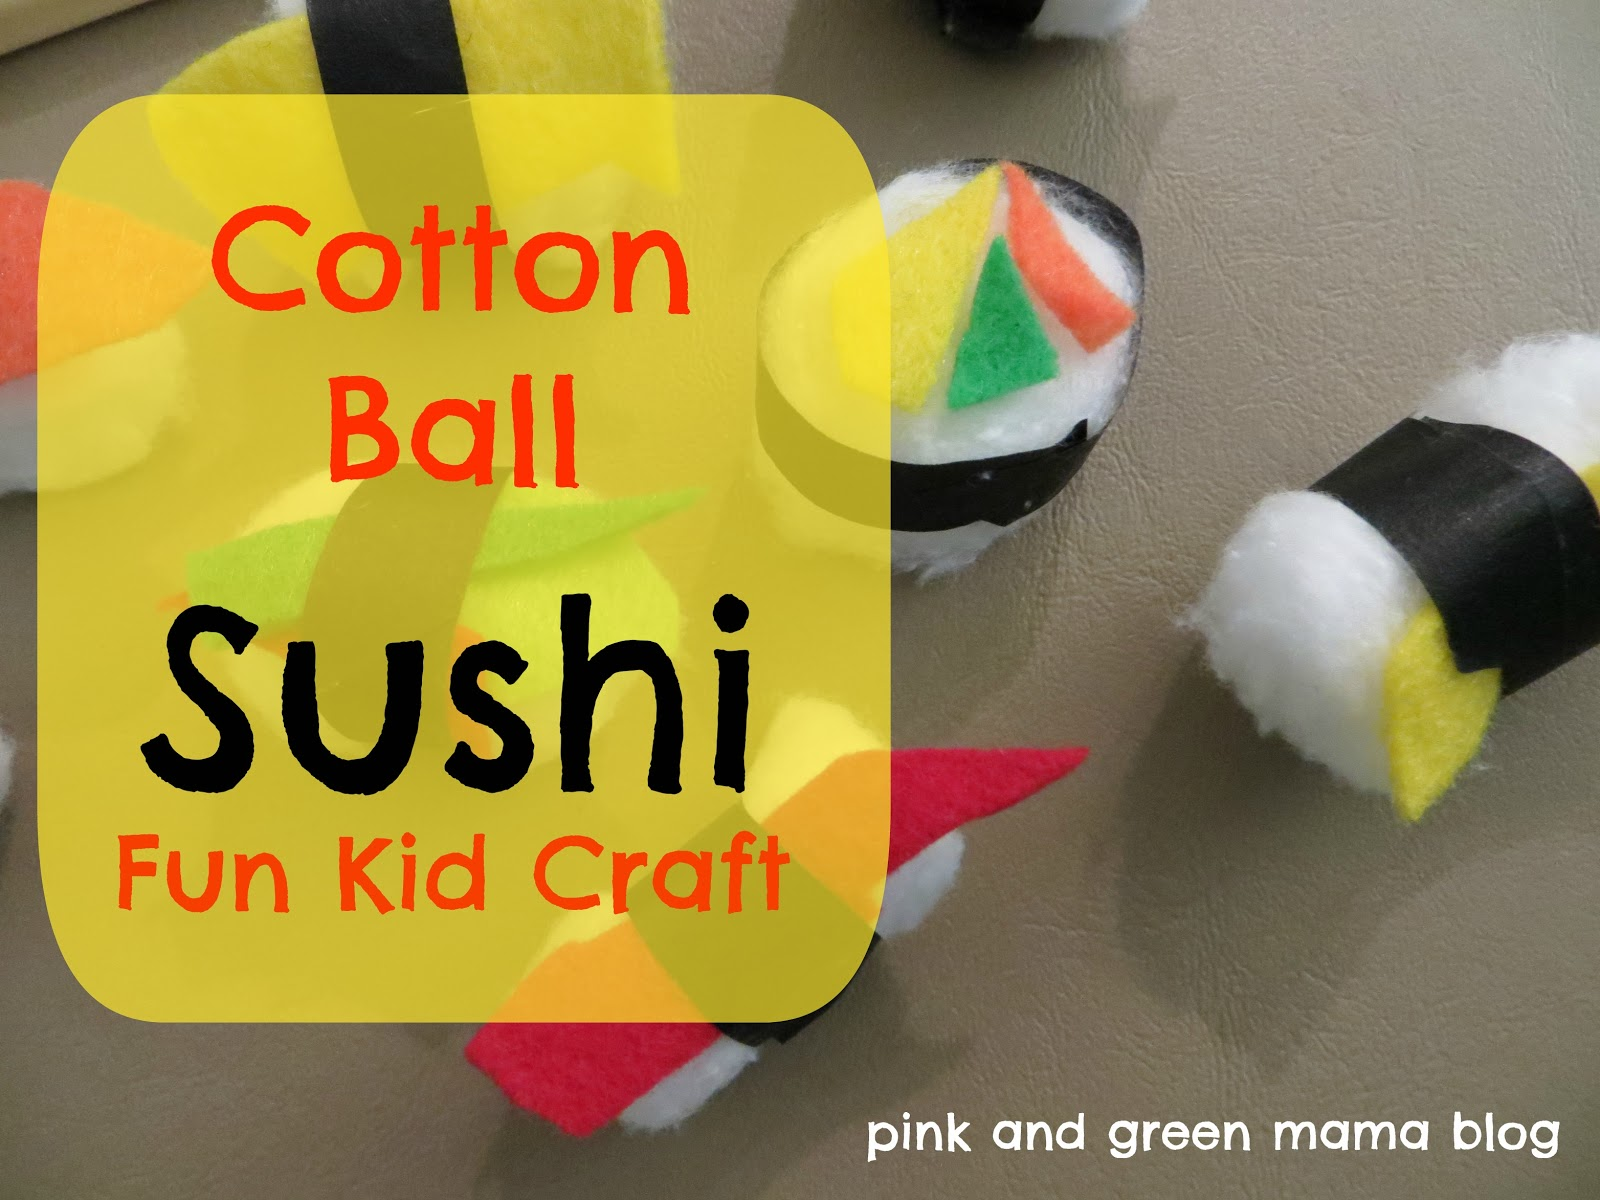 Arts and crafts for 3 year old - Arts And Crafts 5 Year Old Crafts For A 3 Year Old Art Craft For